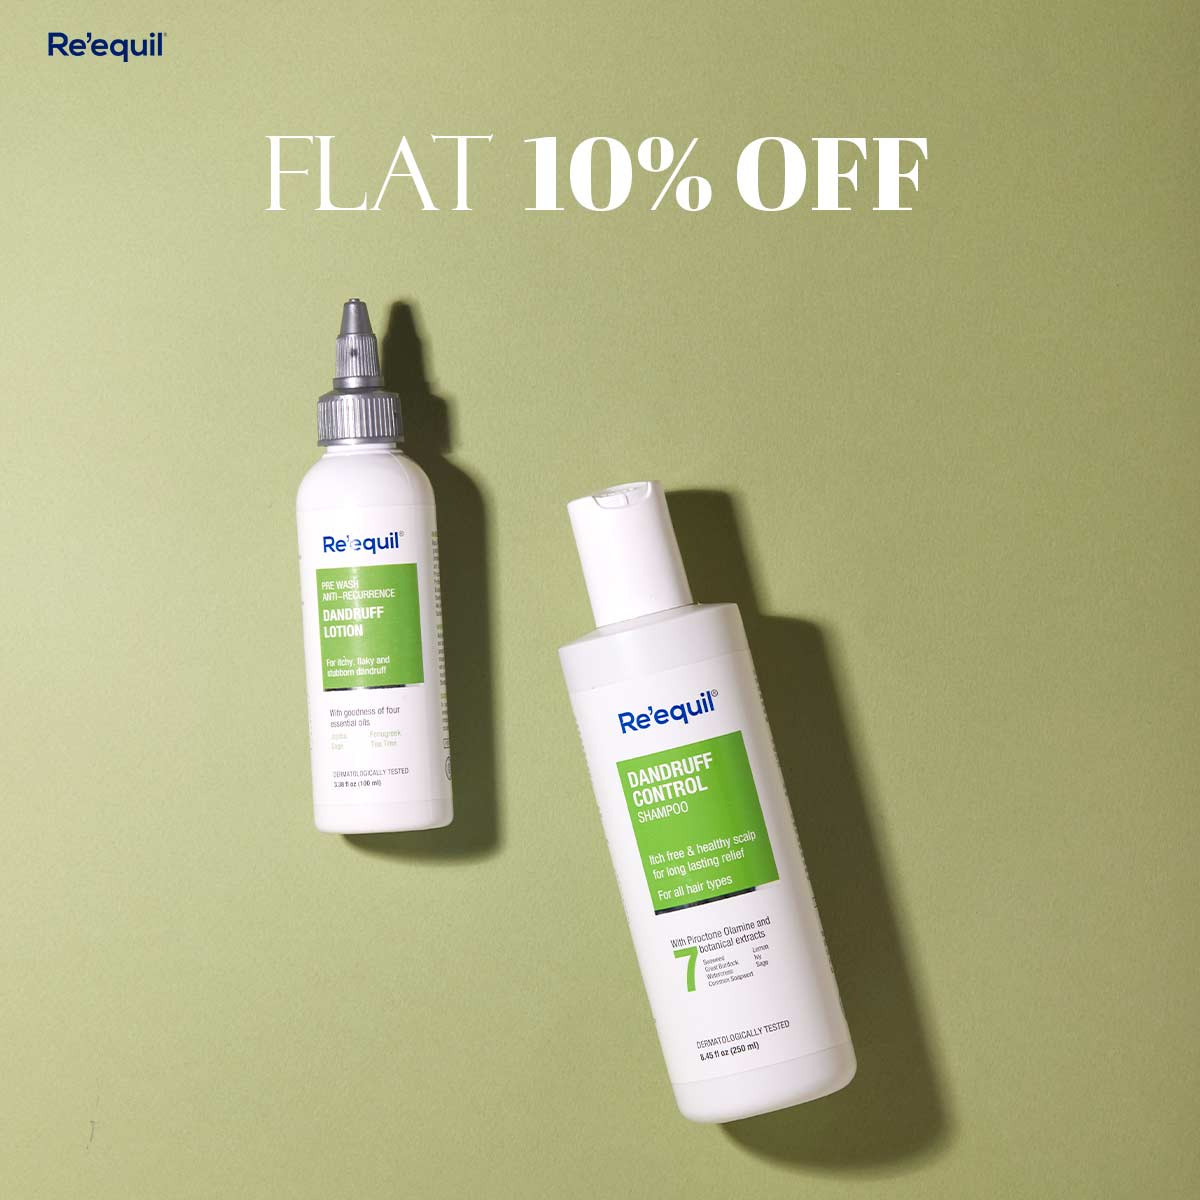 Shop Re'equil at Flat 10% Off